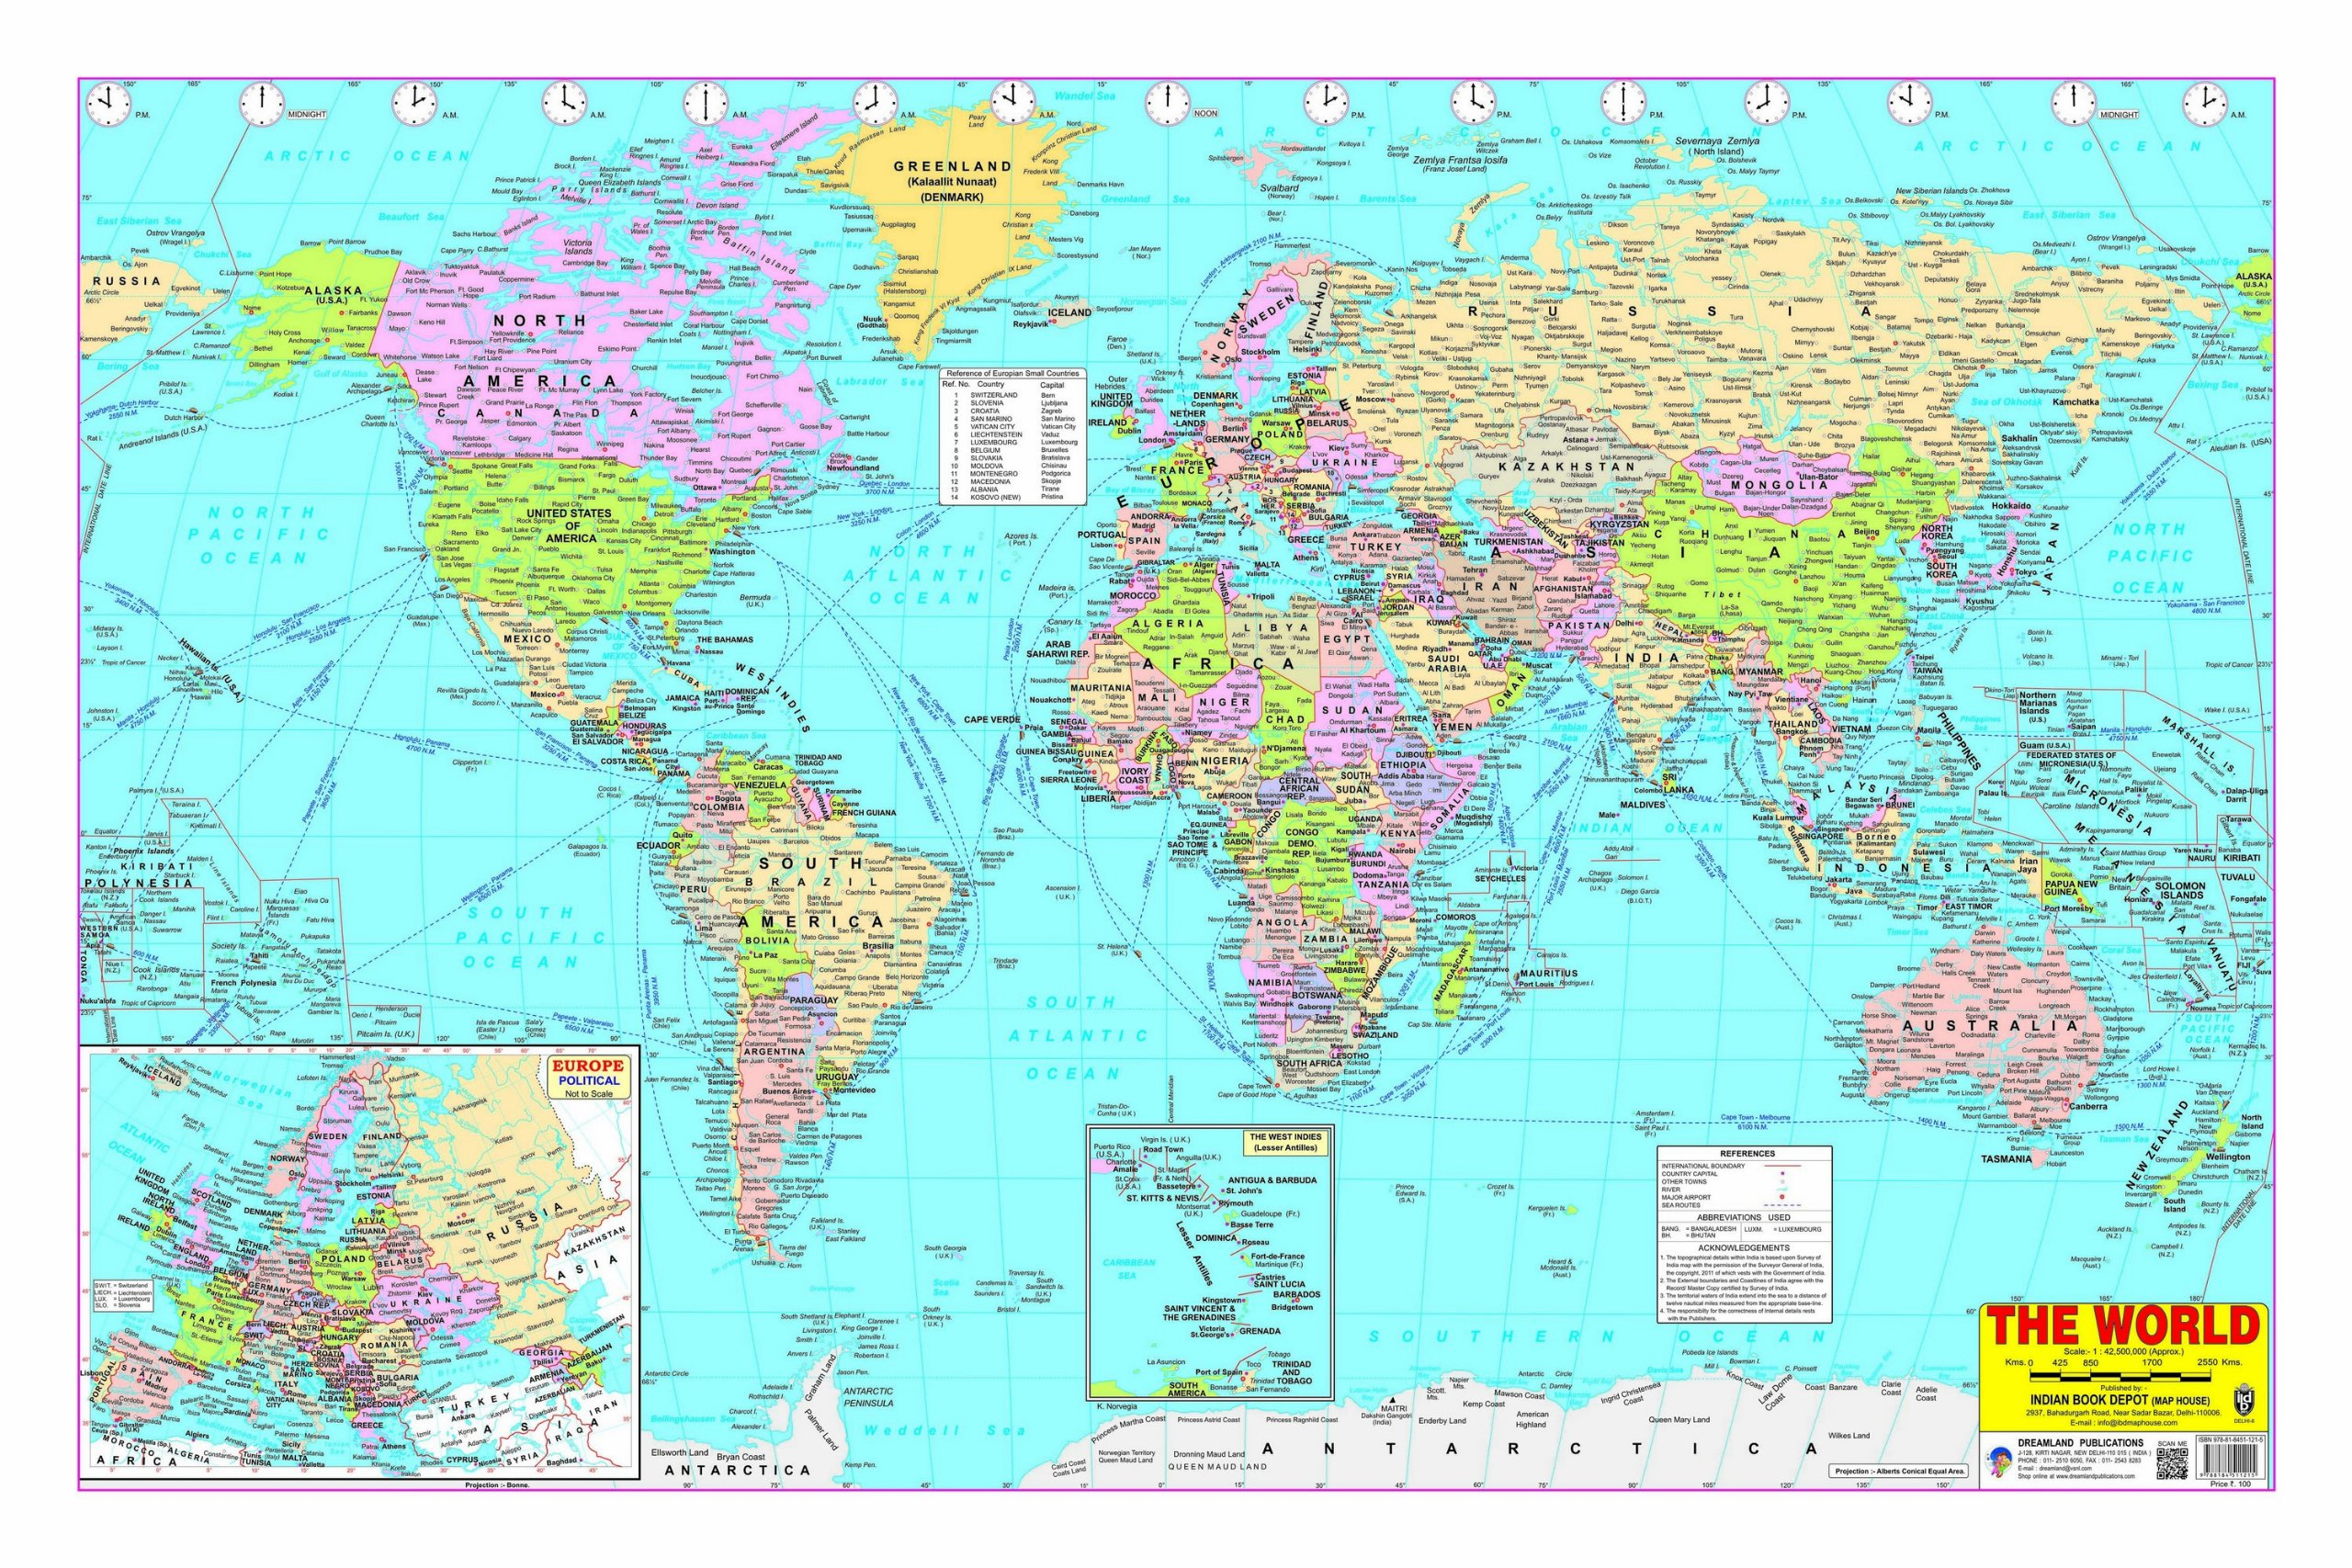 Buy World Map Book Online at Low Prices in India | World Map Reviews on